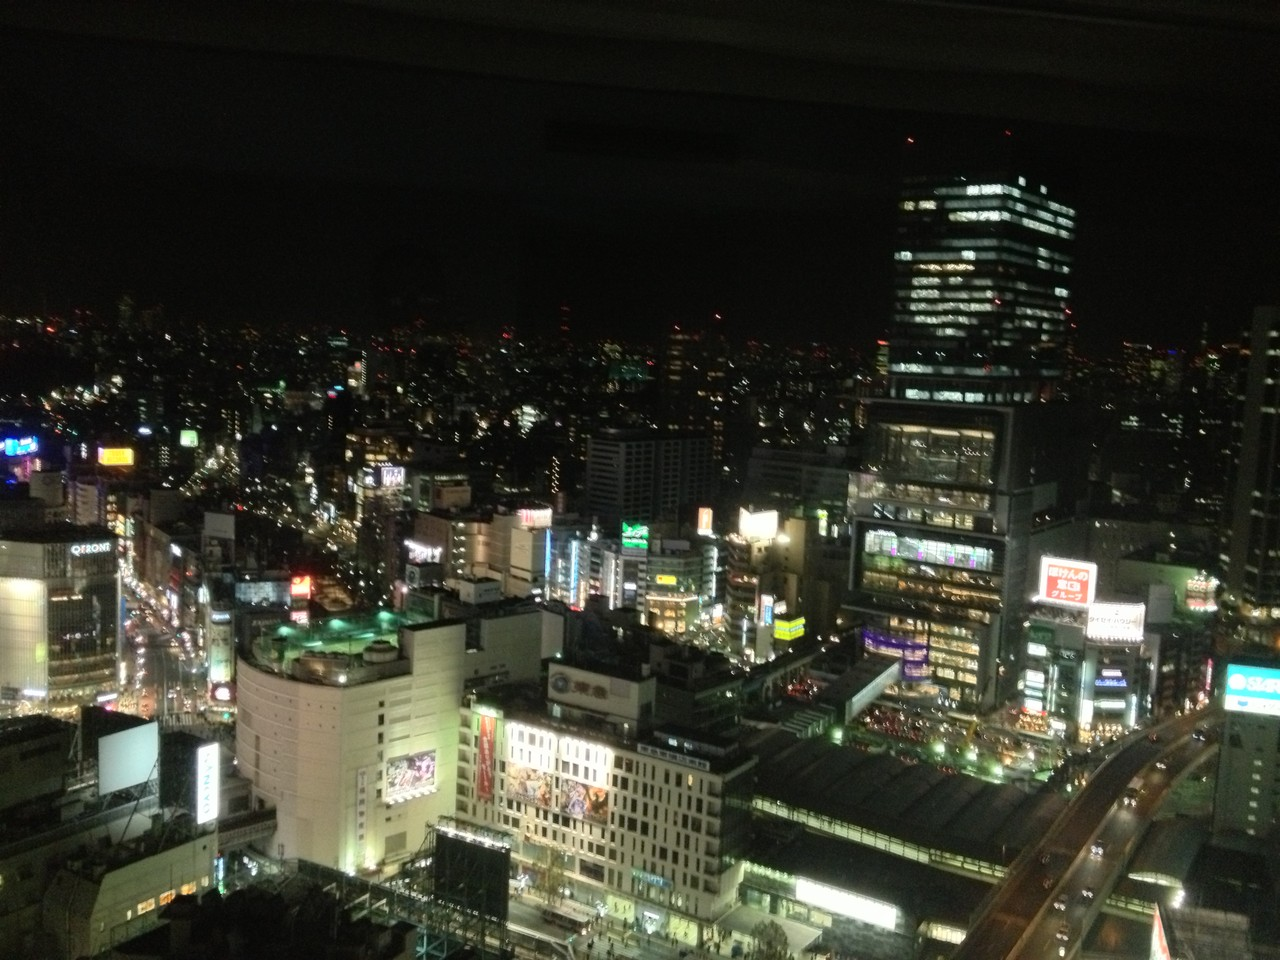 Night falls - and I deliberately don't leave the hotel room. A very important show tomorrow and there are simply too many things to do and places to get lost in this city — in Shibuya-ku, Tokyo.